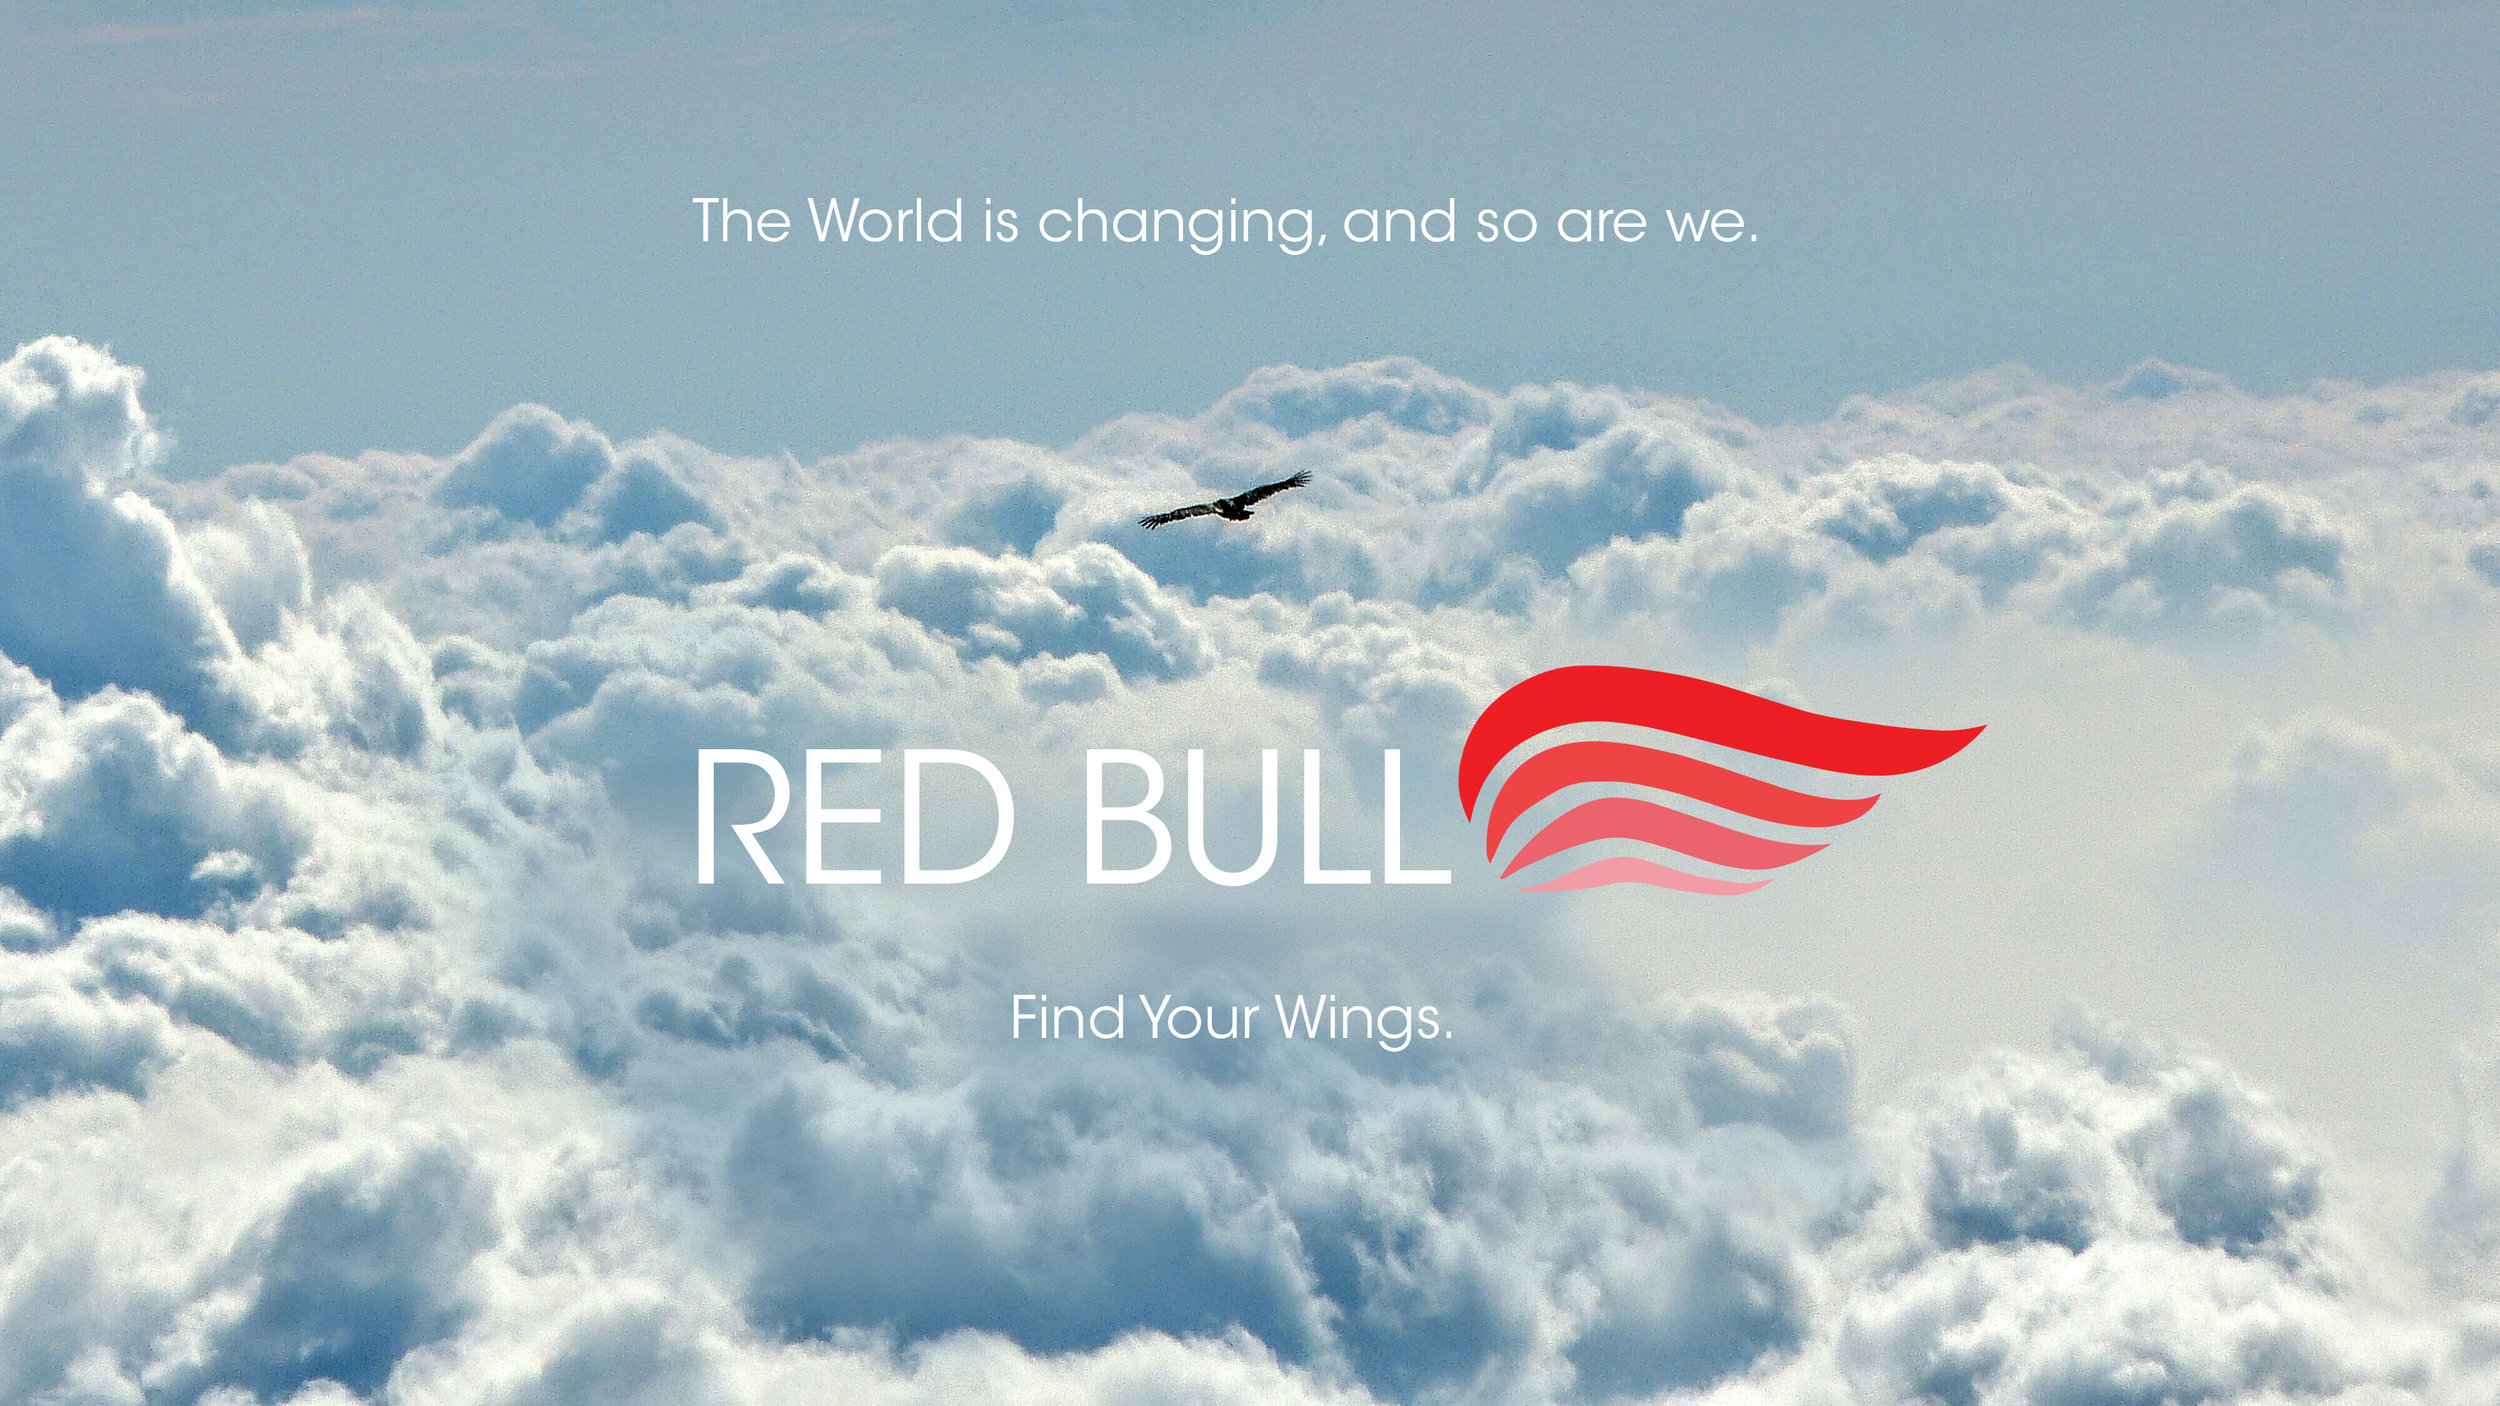 mel blanchard gong ad campaign RedBull_Find Your Wings.jpg